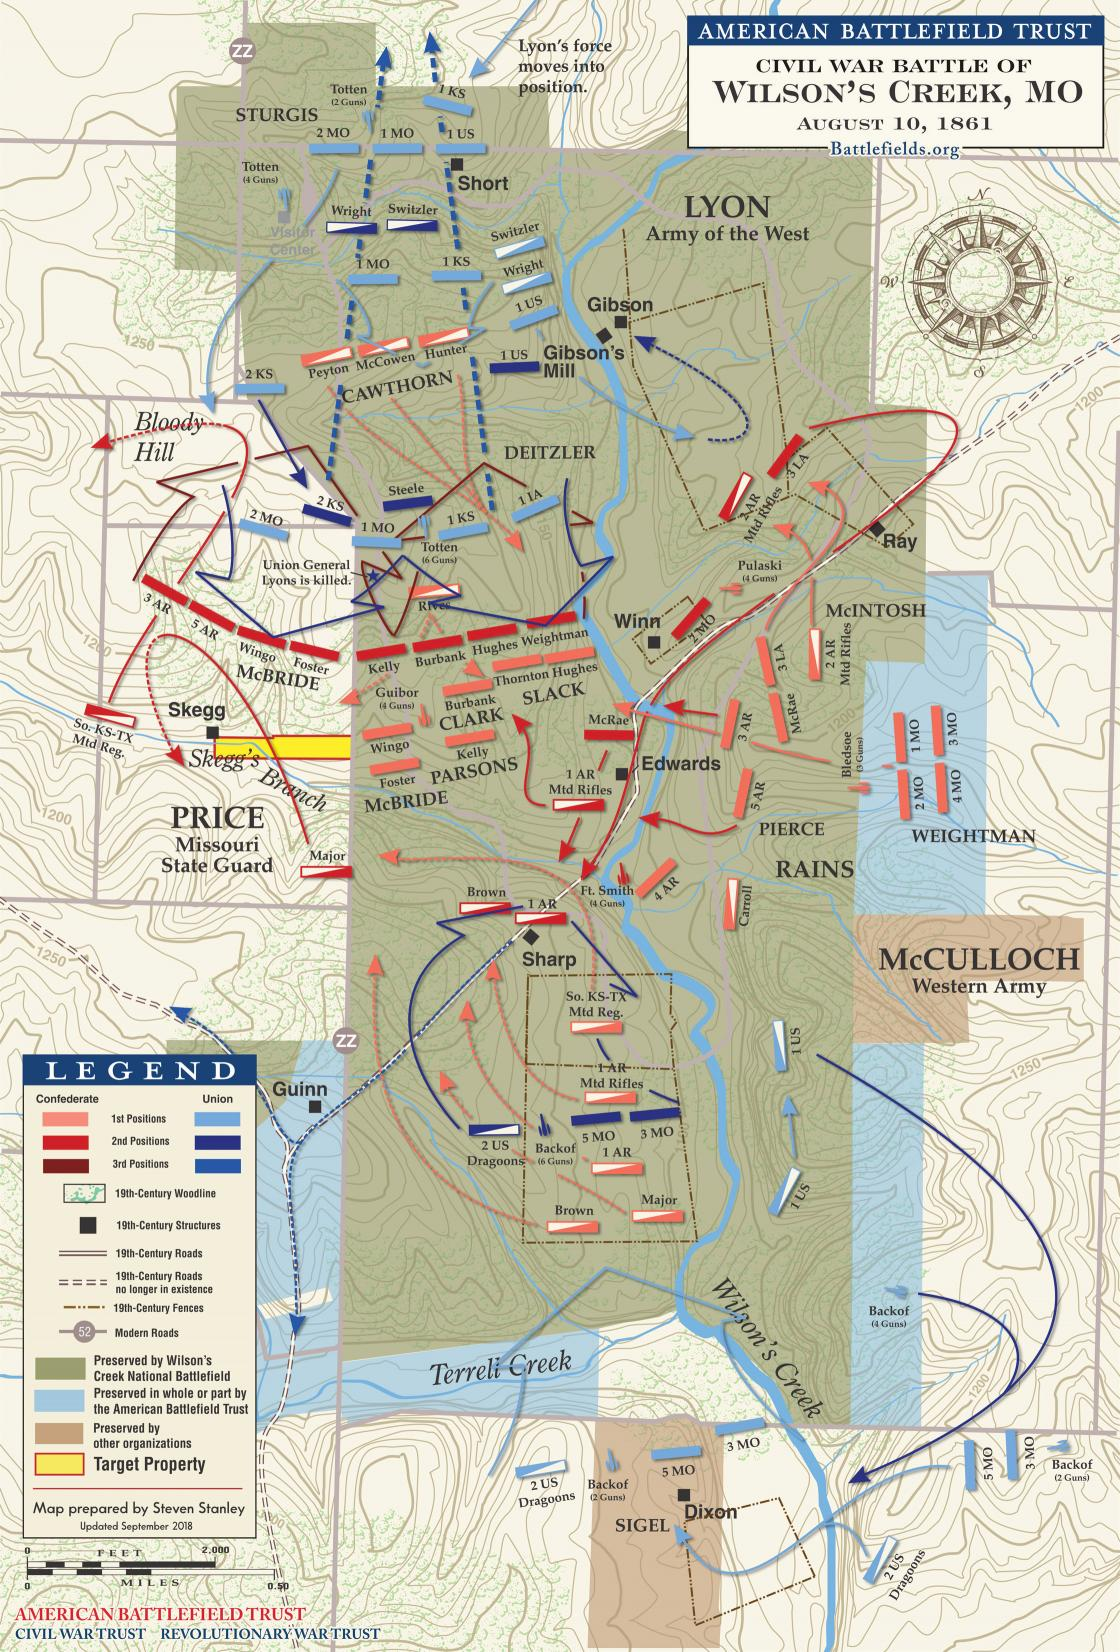 The Battle of Wilson's Creek - August 10, 1861